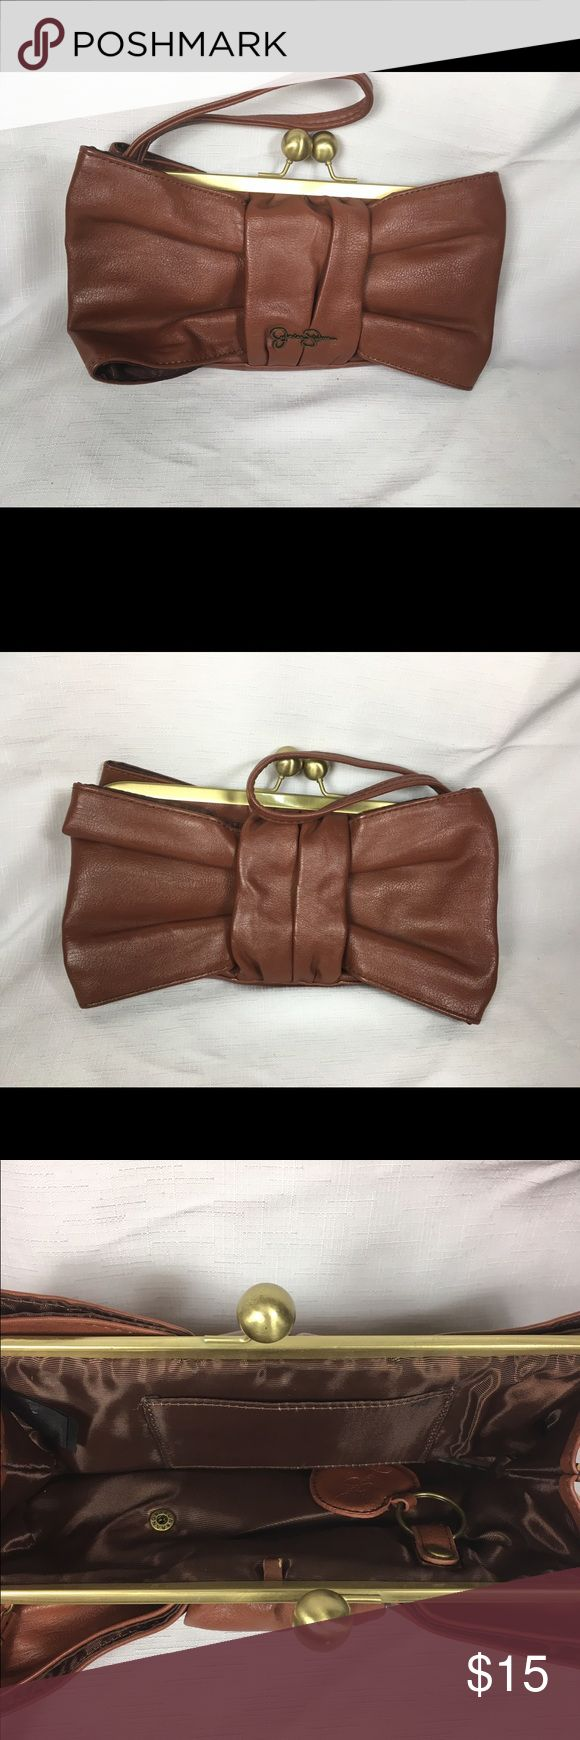 Jessica Simpson Brown Bow Clutch Adorable brown bow clutch/wristlet by Jessica Simpson.  Bag has an antiquey gold clasp detail. The inside is very clean. The little loop on the inside for your keys does have a little wear.  There also looks to be a small stain on the inside pocket.                                               Bag is roughly 11in x6in.    Bag is large enough for going out or when you just don't want to carry your big purse. Jessica Simpson Bags Clutches & Wristlets